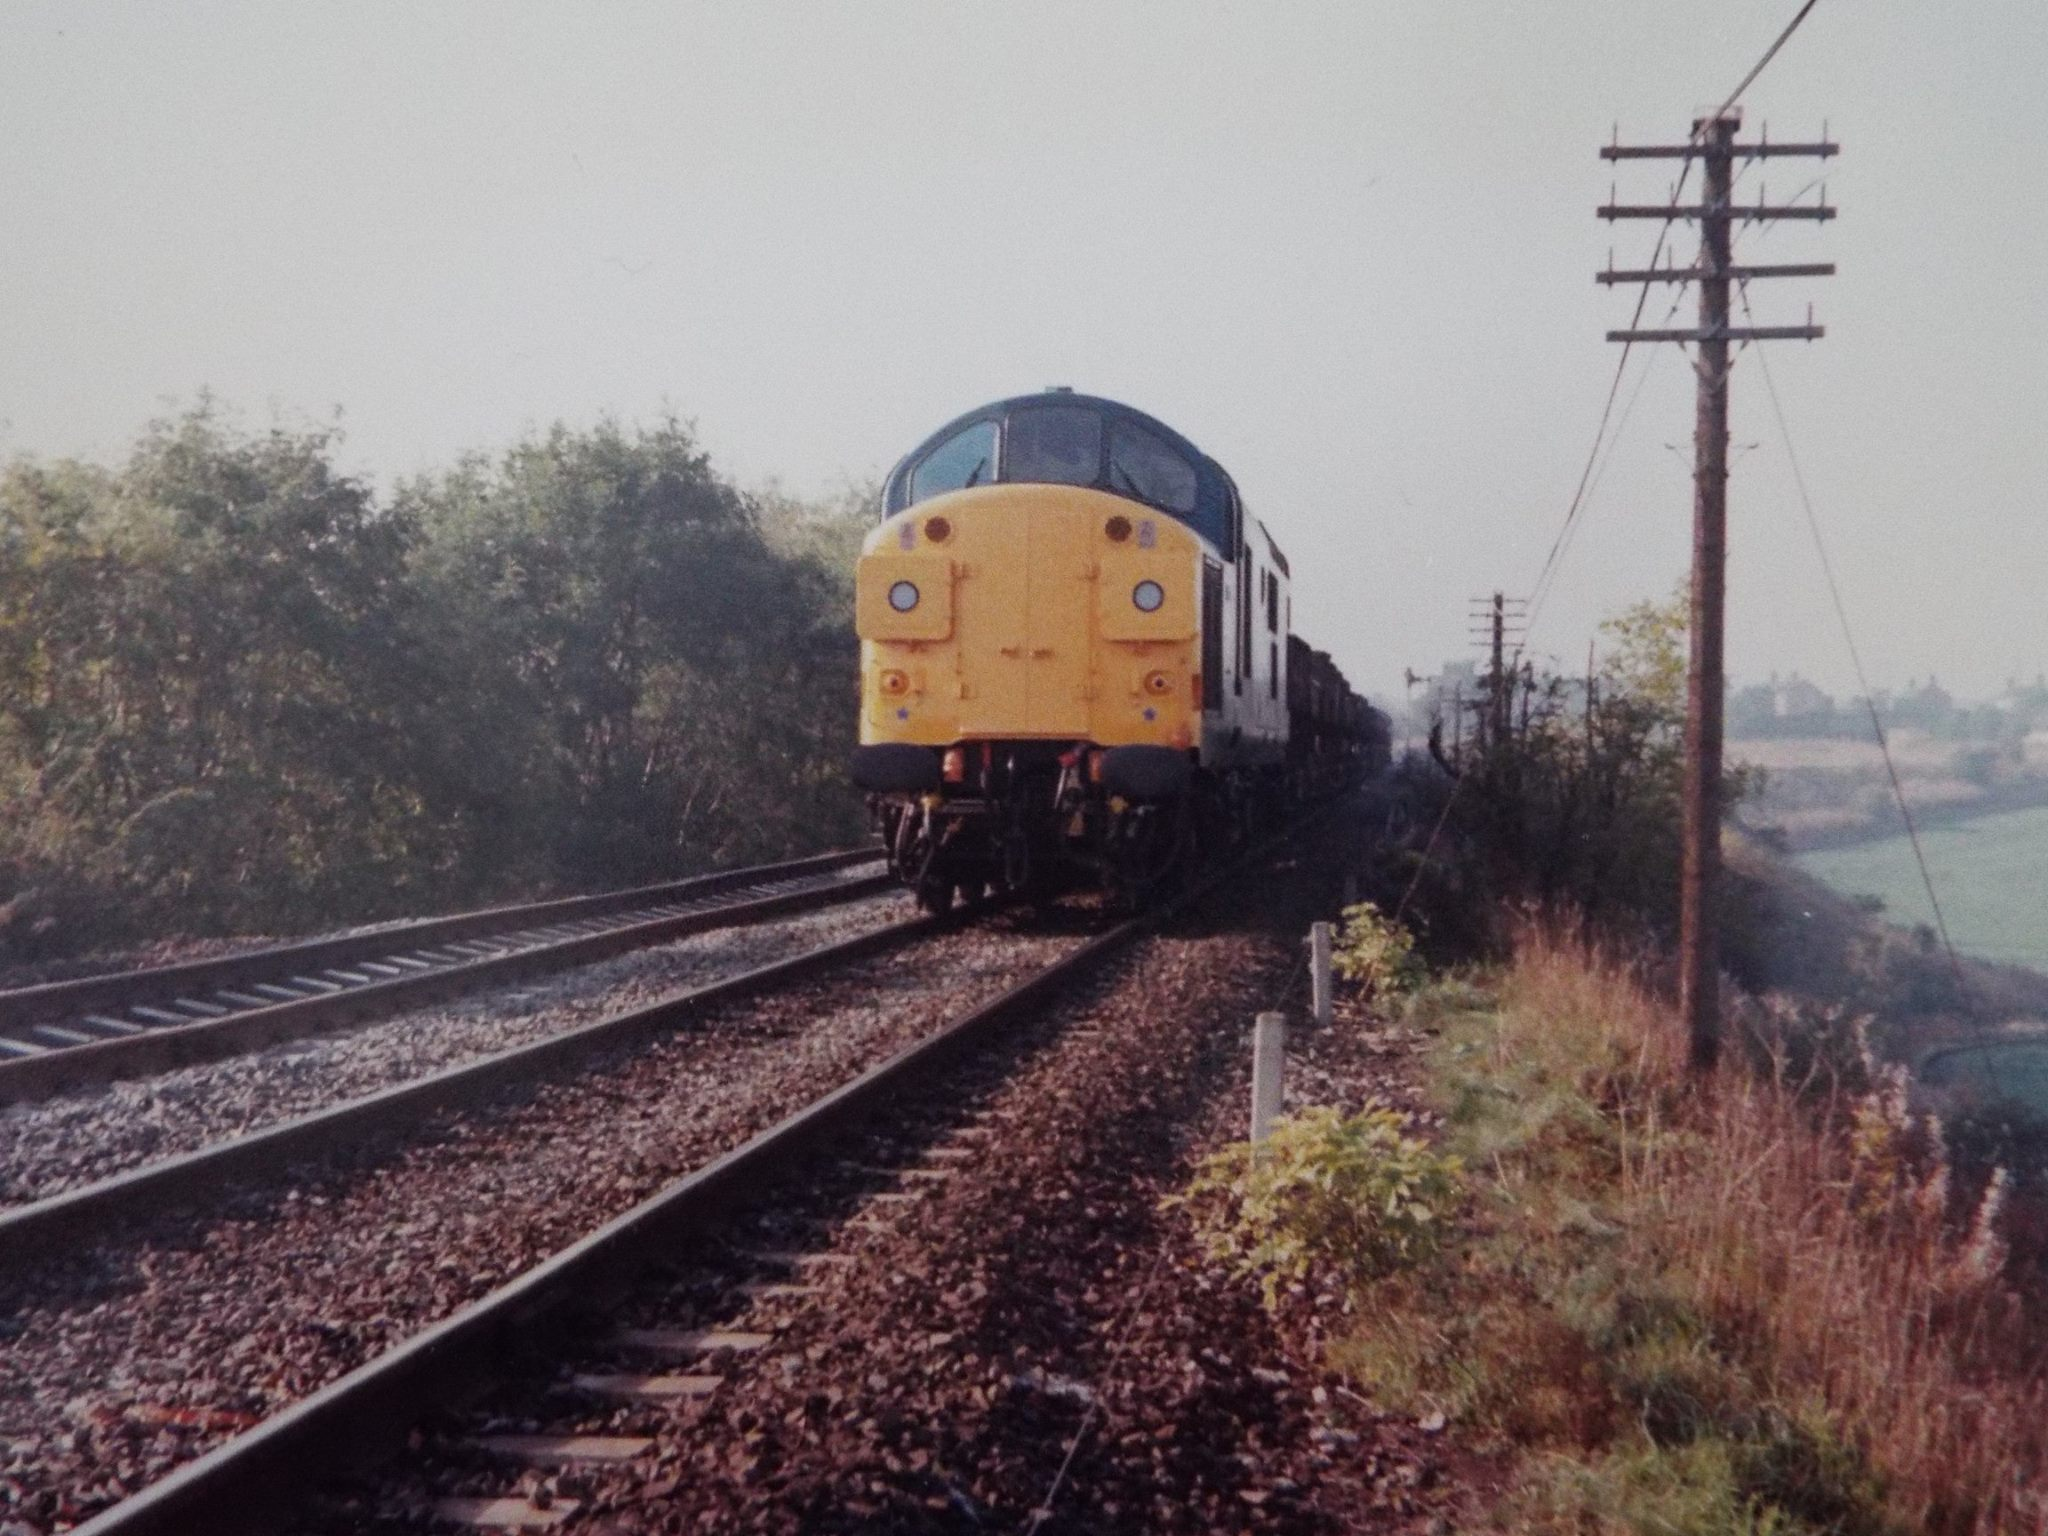 37108 passes Pelton with the 6T10 on 21 November 1979. Photo Copyright John Atkinson